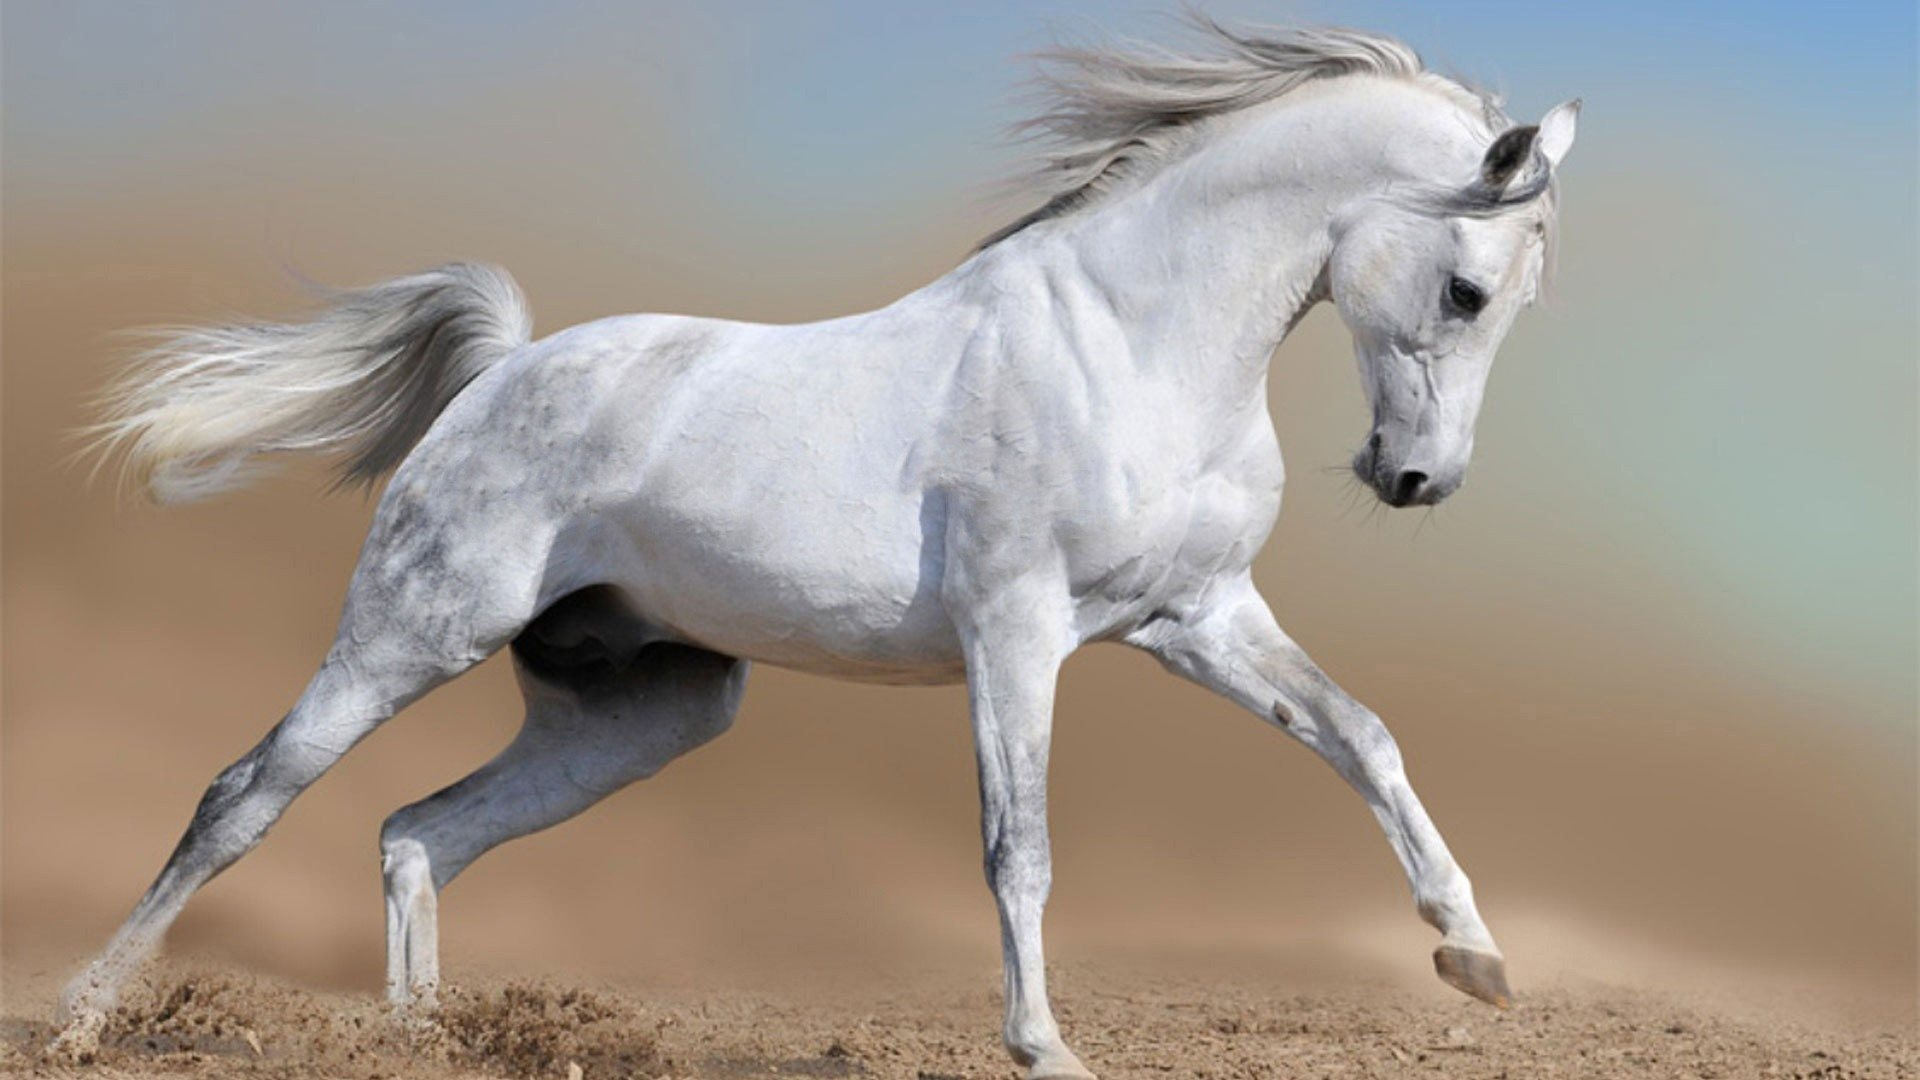 download horses desktop wallpaper which is under the horse wallpapers 1920x1080